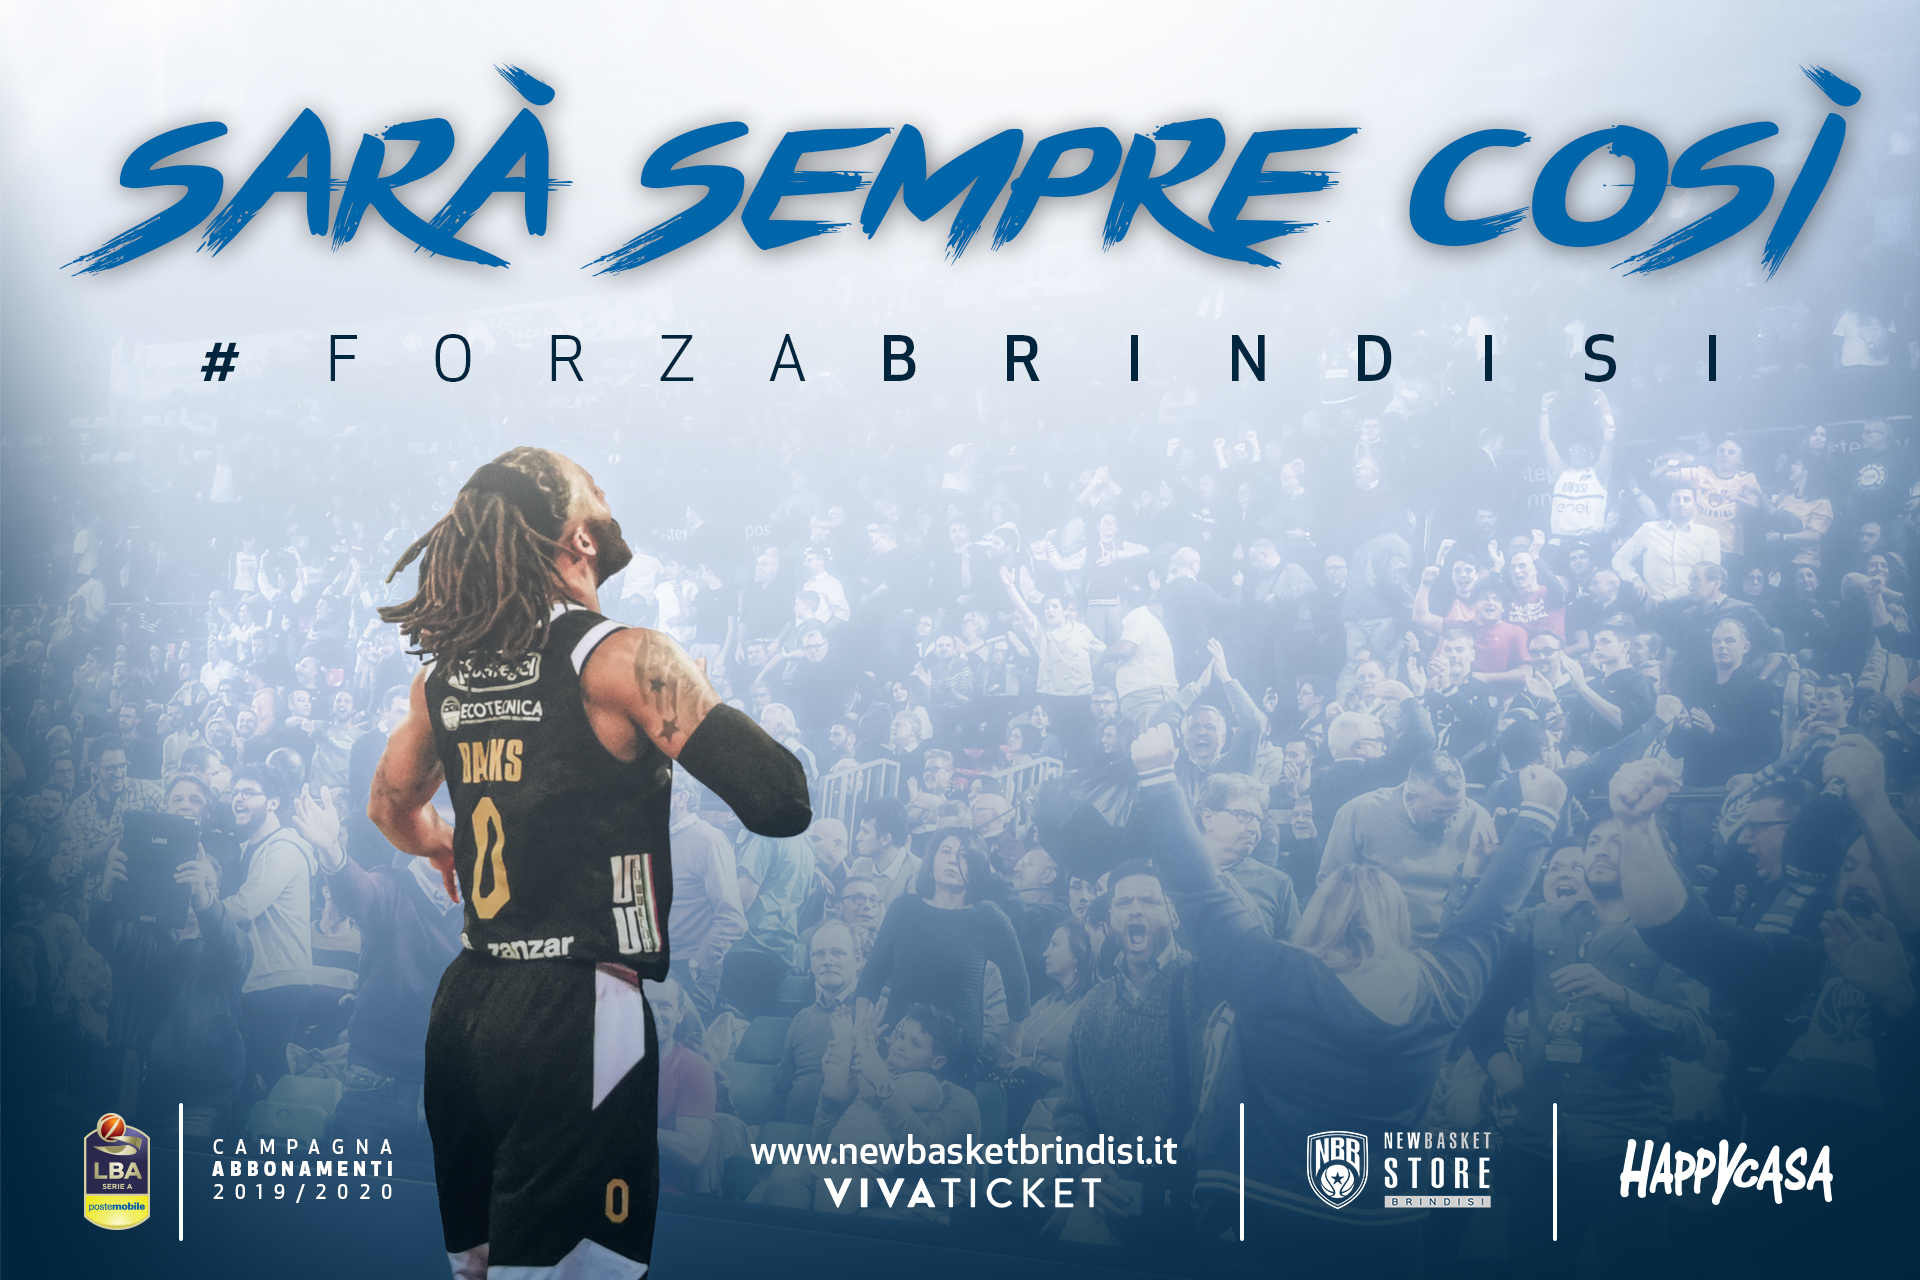 https://www.newbasketbrindisi.it/wp-content/uploads/2019/06/Abb_DEF_Sito.jpg